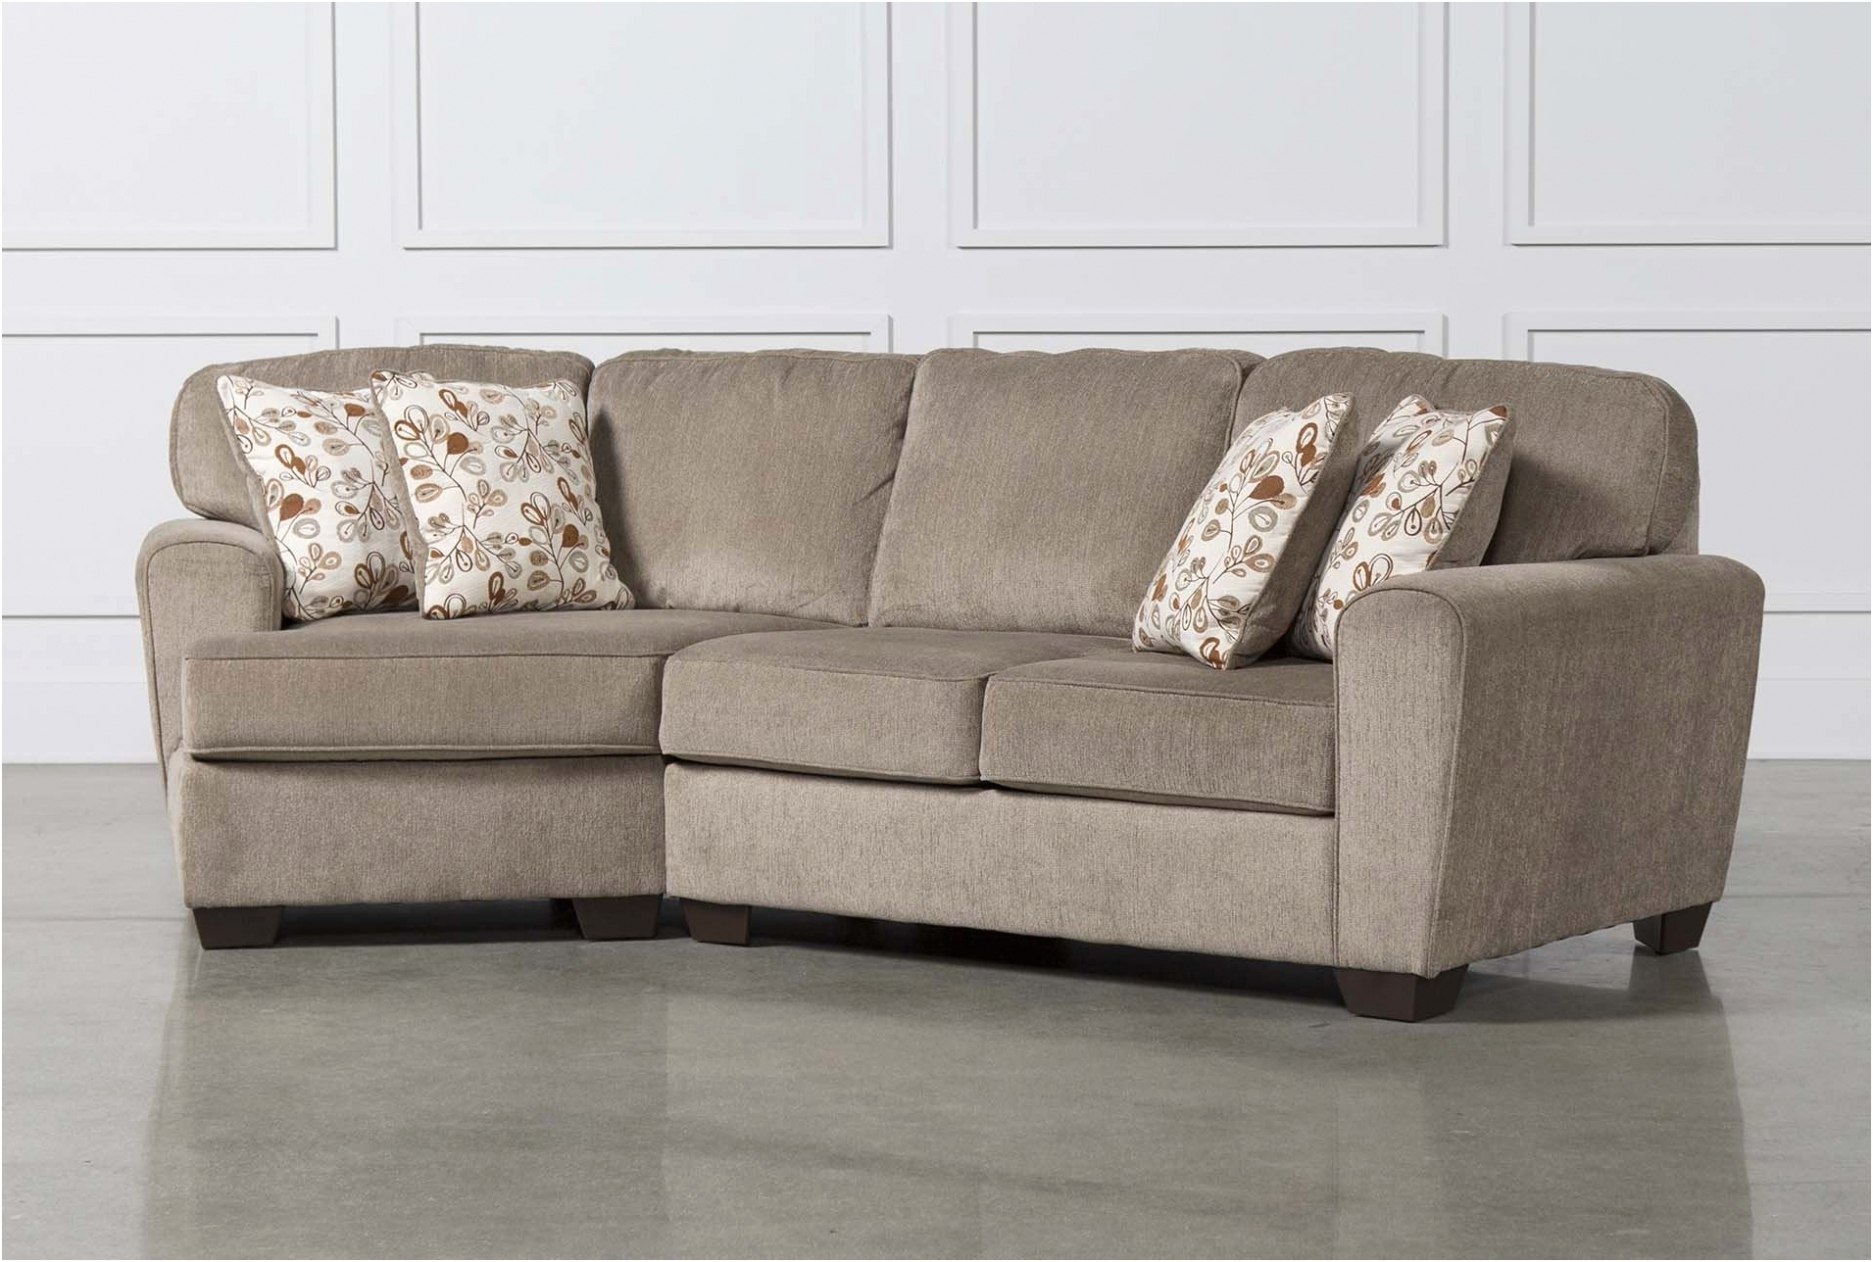 Living Spaces Sectional Sofa Bed - Sofa Design Ideas for Aquarius Dark Grey 2 Piece Sectionals With Laf Chaise (Image 18 of 30)